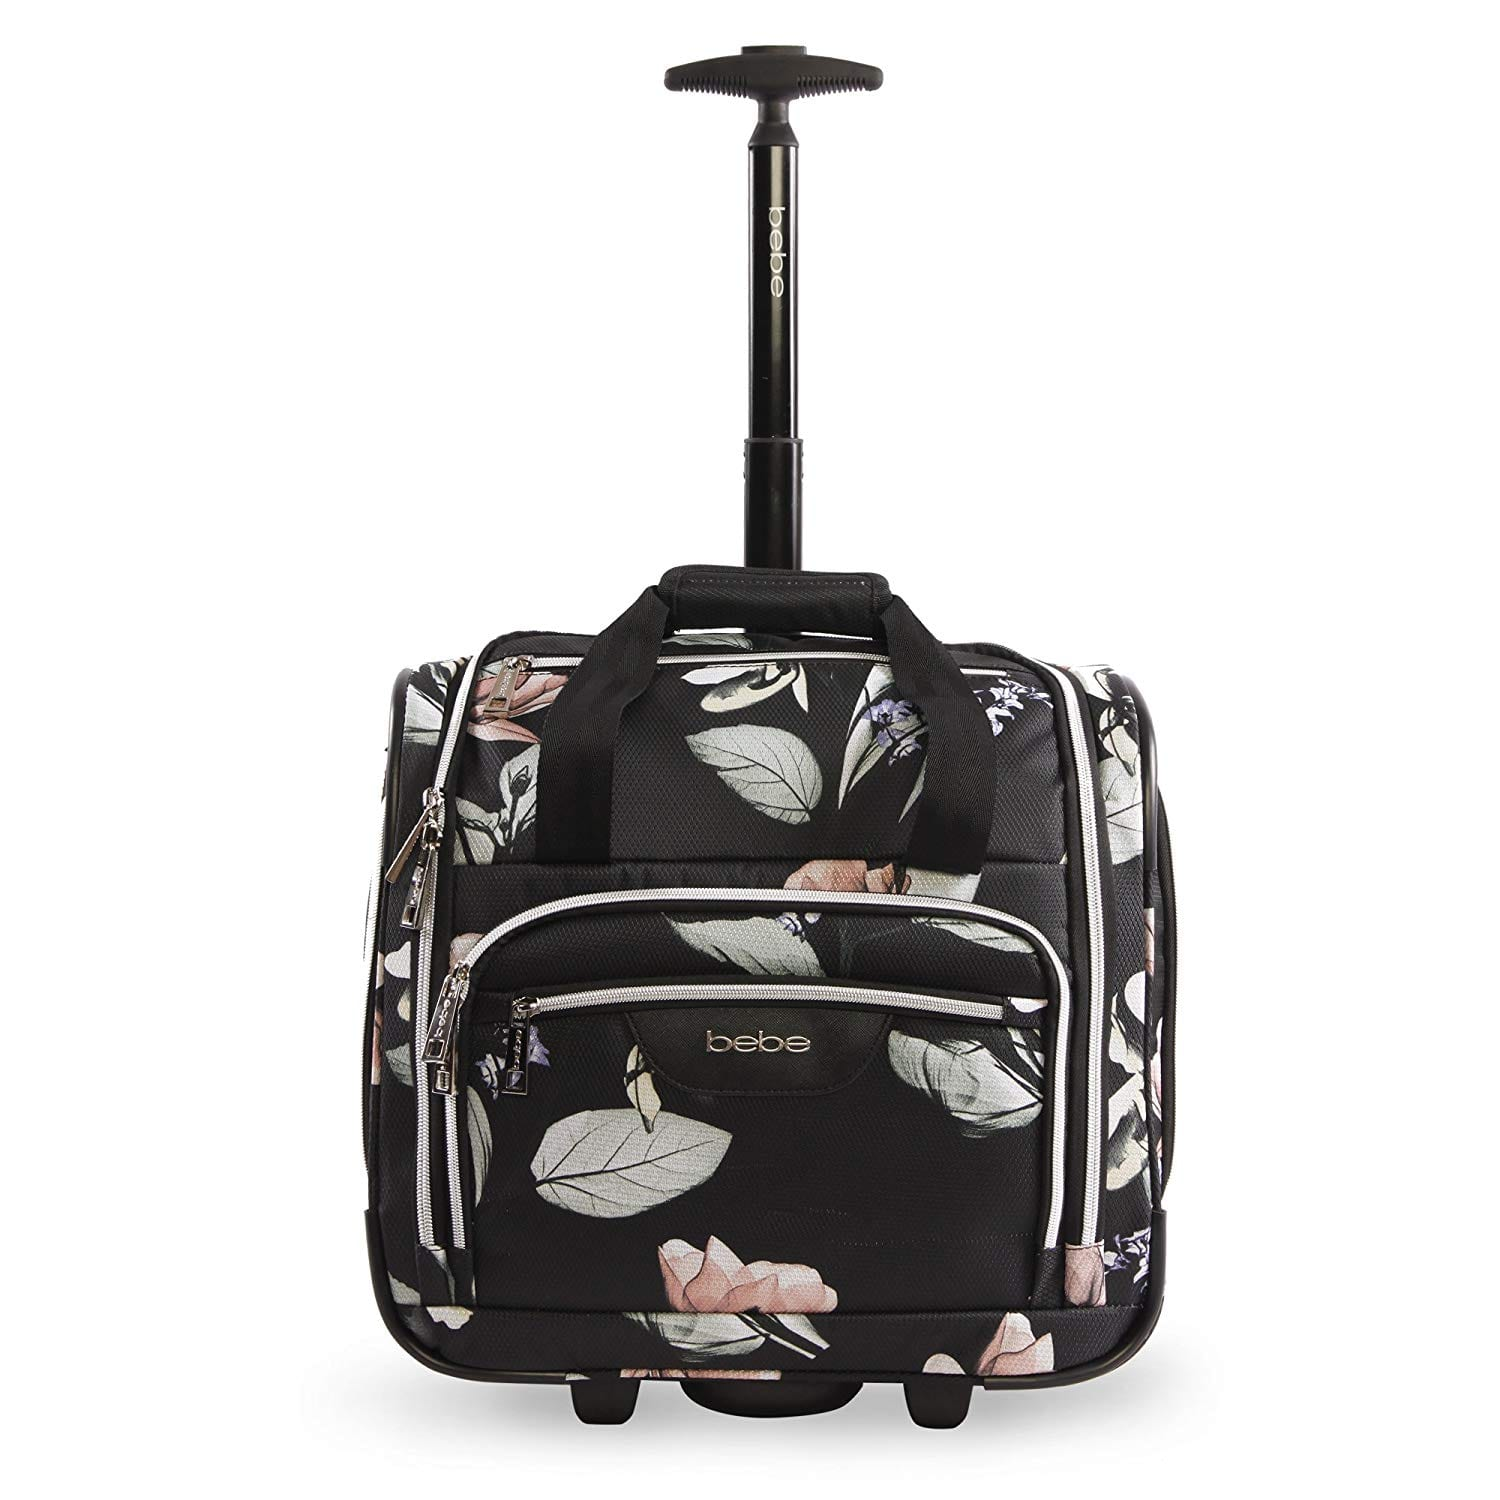 BEBE Valentina Wheeled Carry-on Luggage for Women